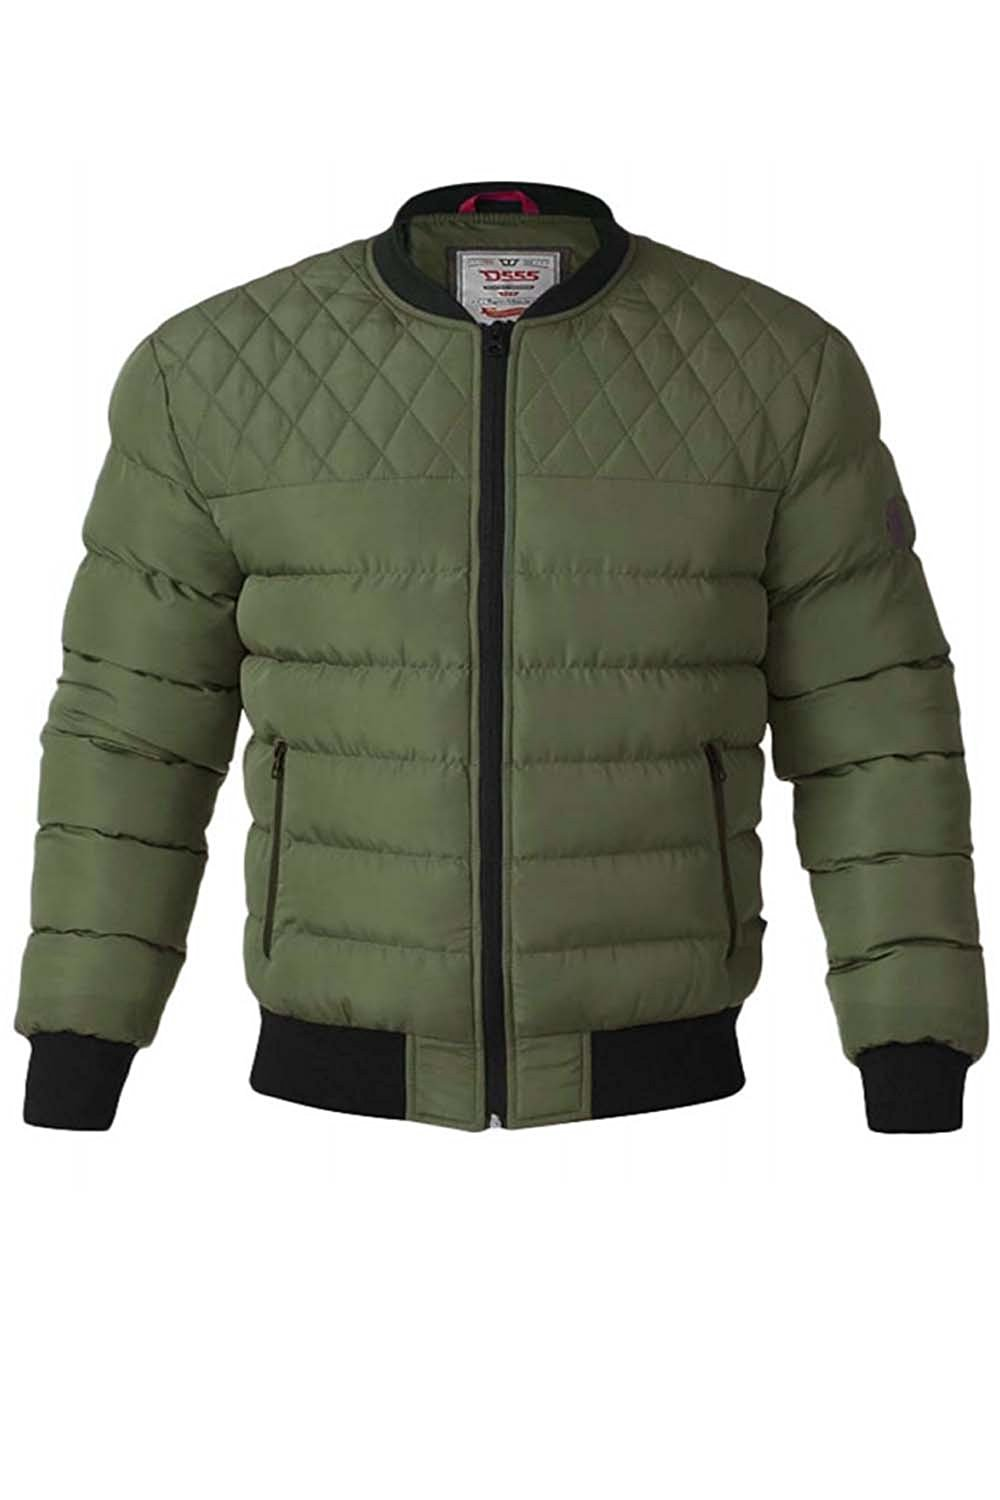 492052a5e0e1 Get Quotations · Mens Duke D555 Big Tall King Size Turner Quilted Padded  Bomber Jacket